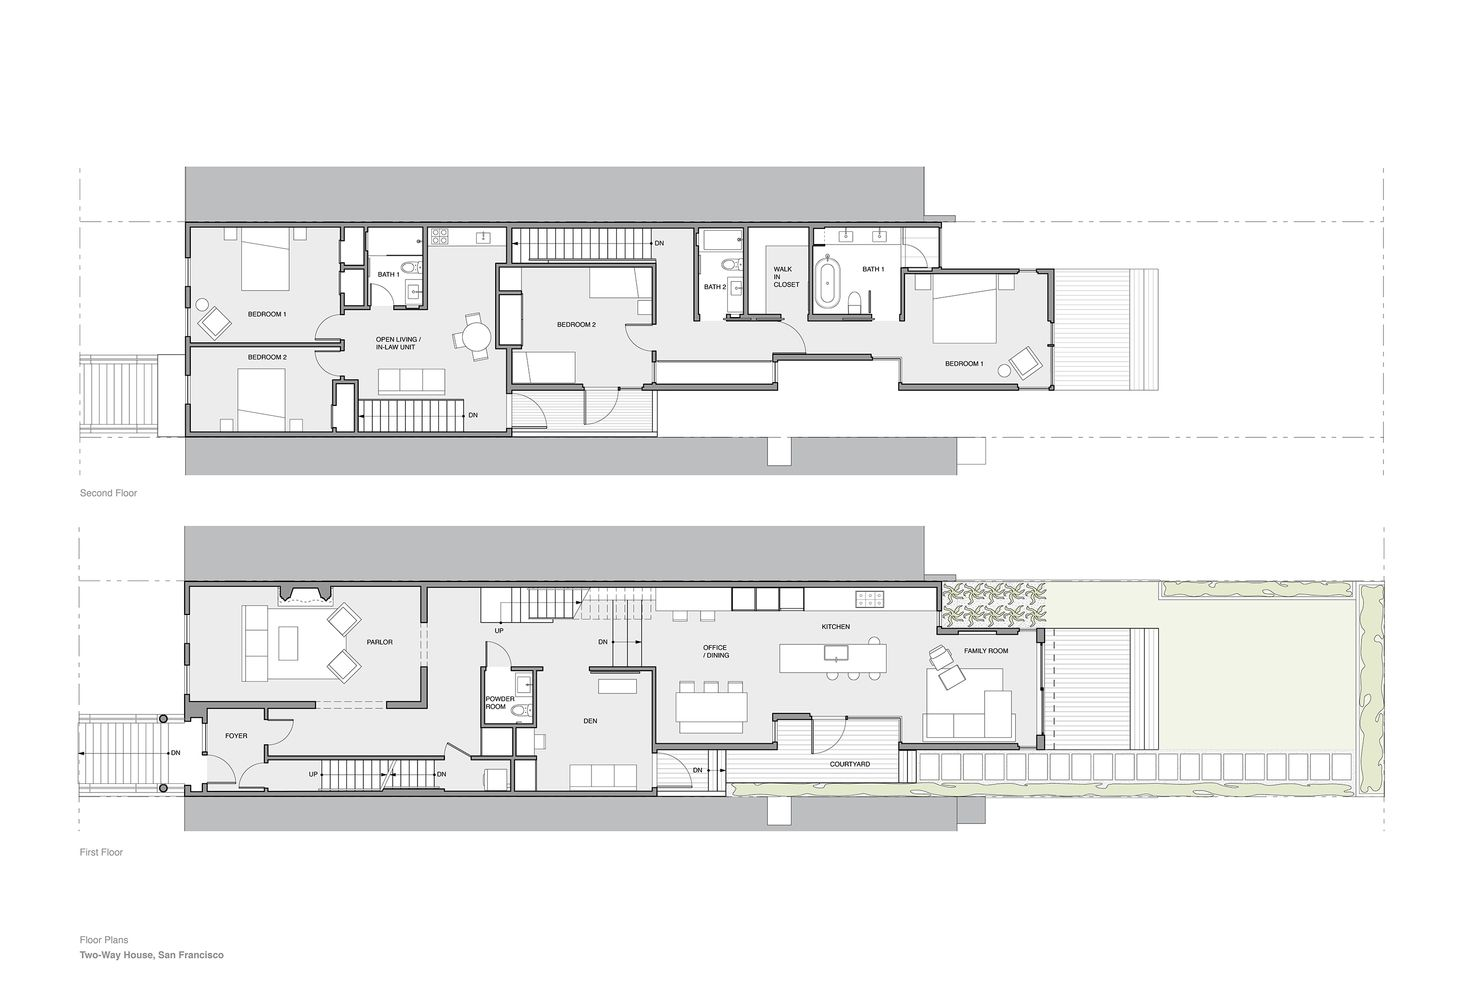 Gallery Of Two Way House Studio Sarah Willmer 18 Floor Plans Home Design Plans Layout Architecture